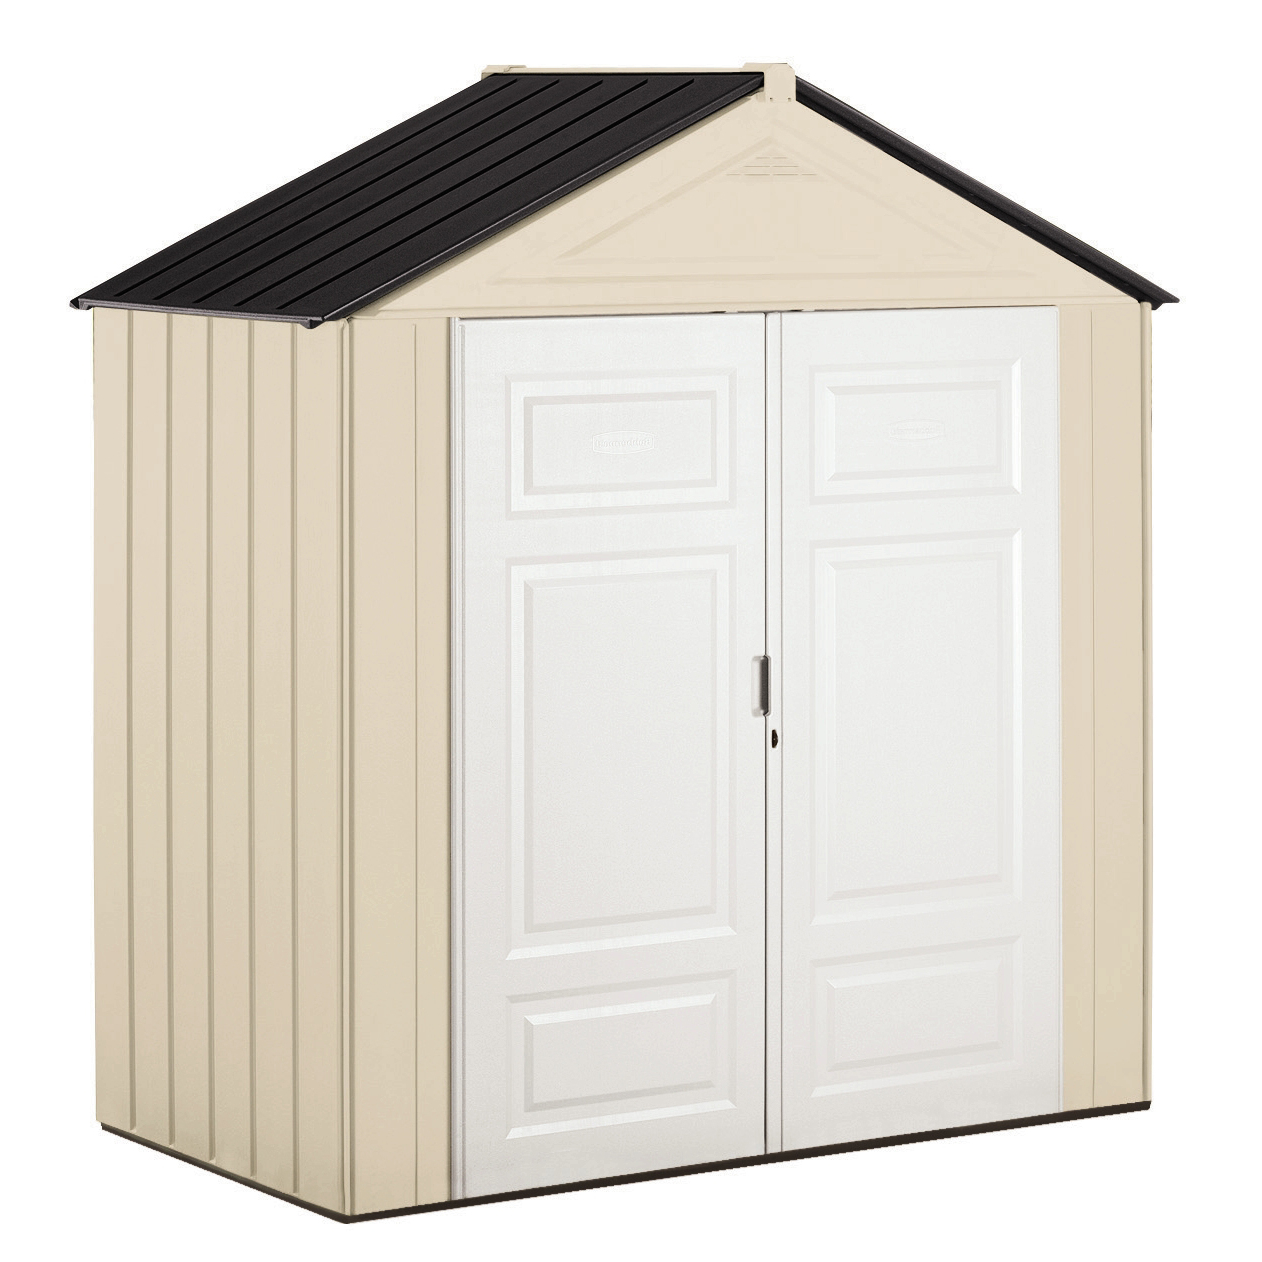 Rubbermaid 3 x 7 ft Resin Storage Shed, Sandstone & Onyx